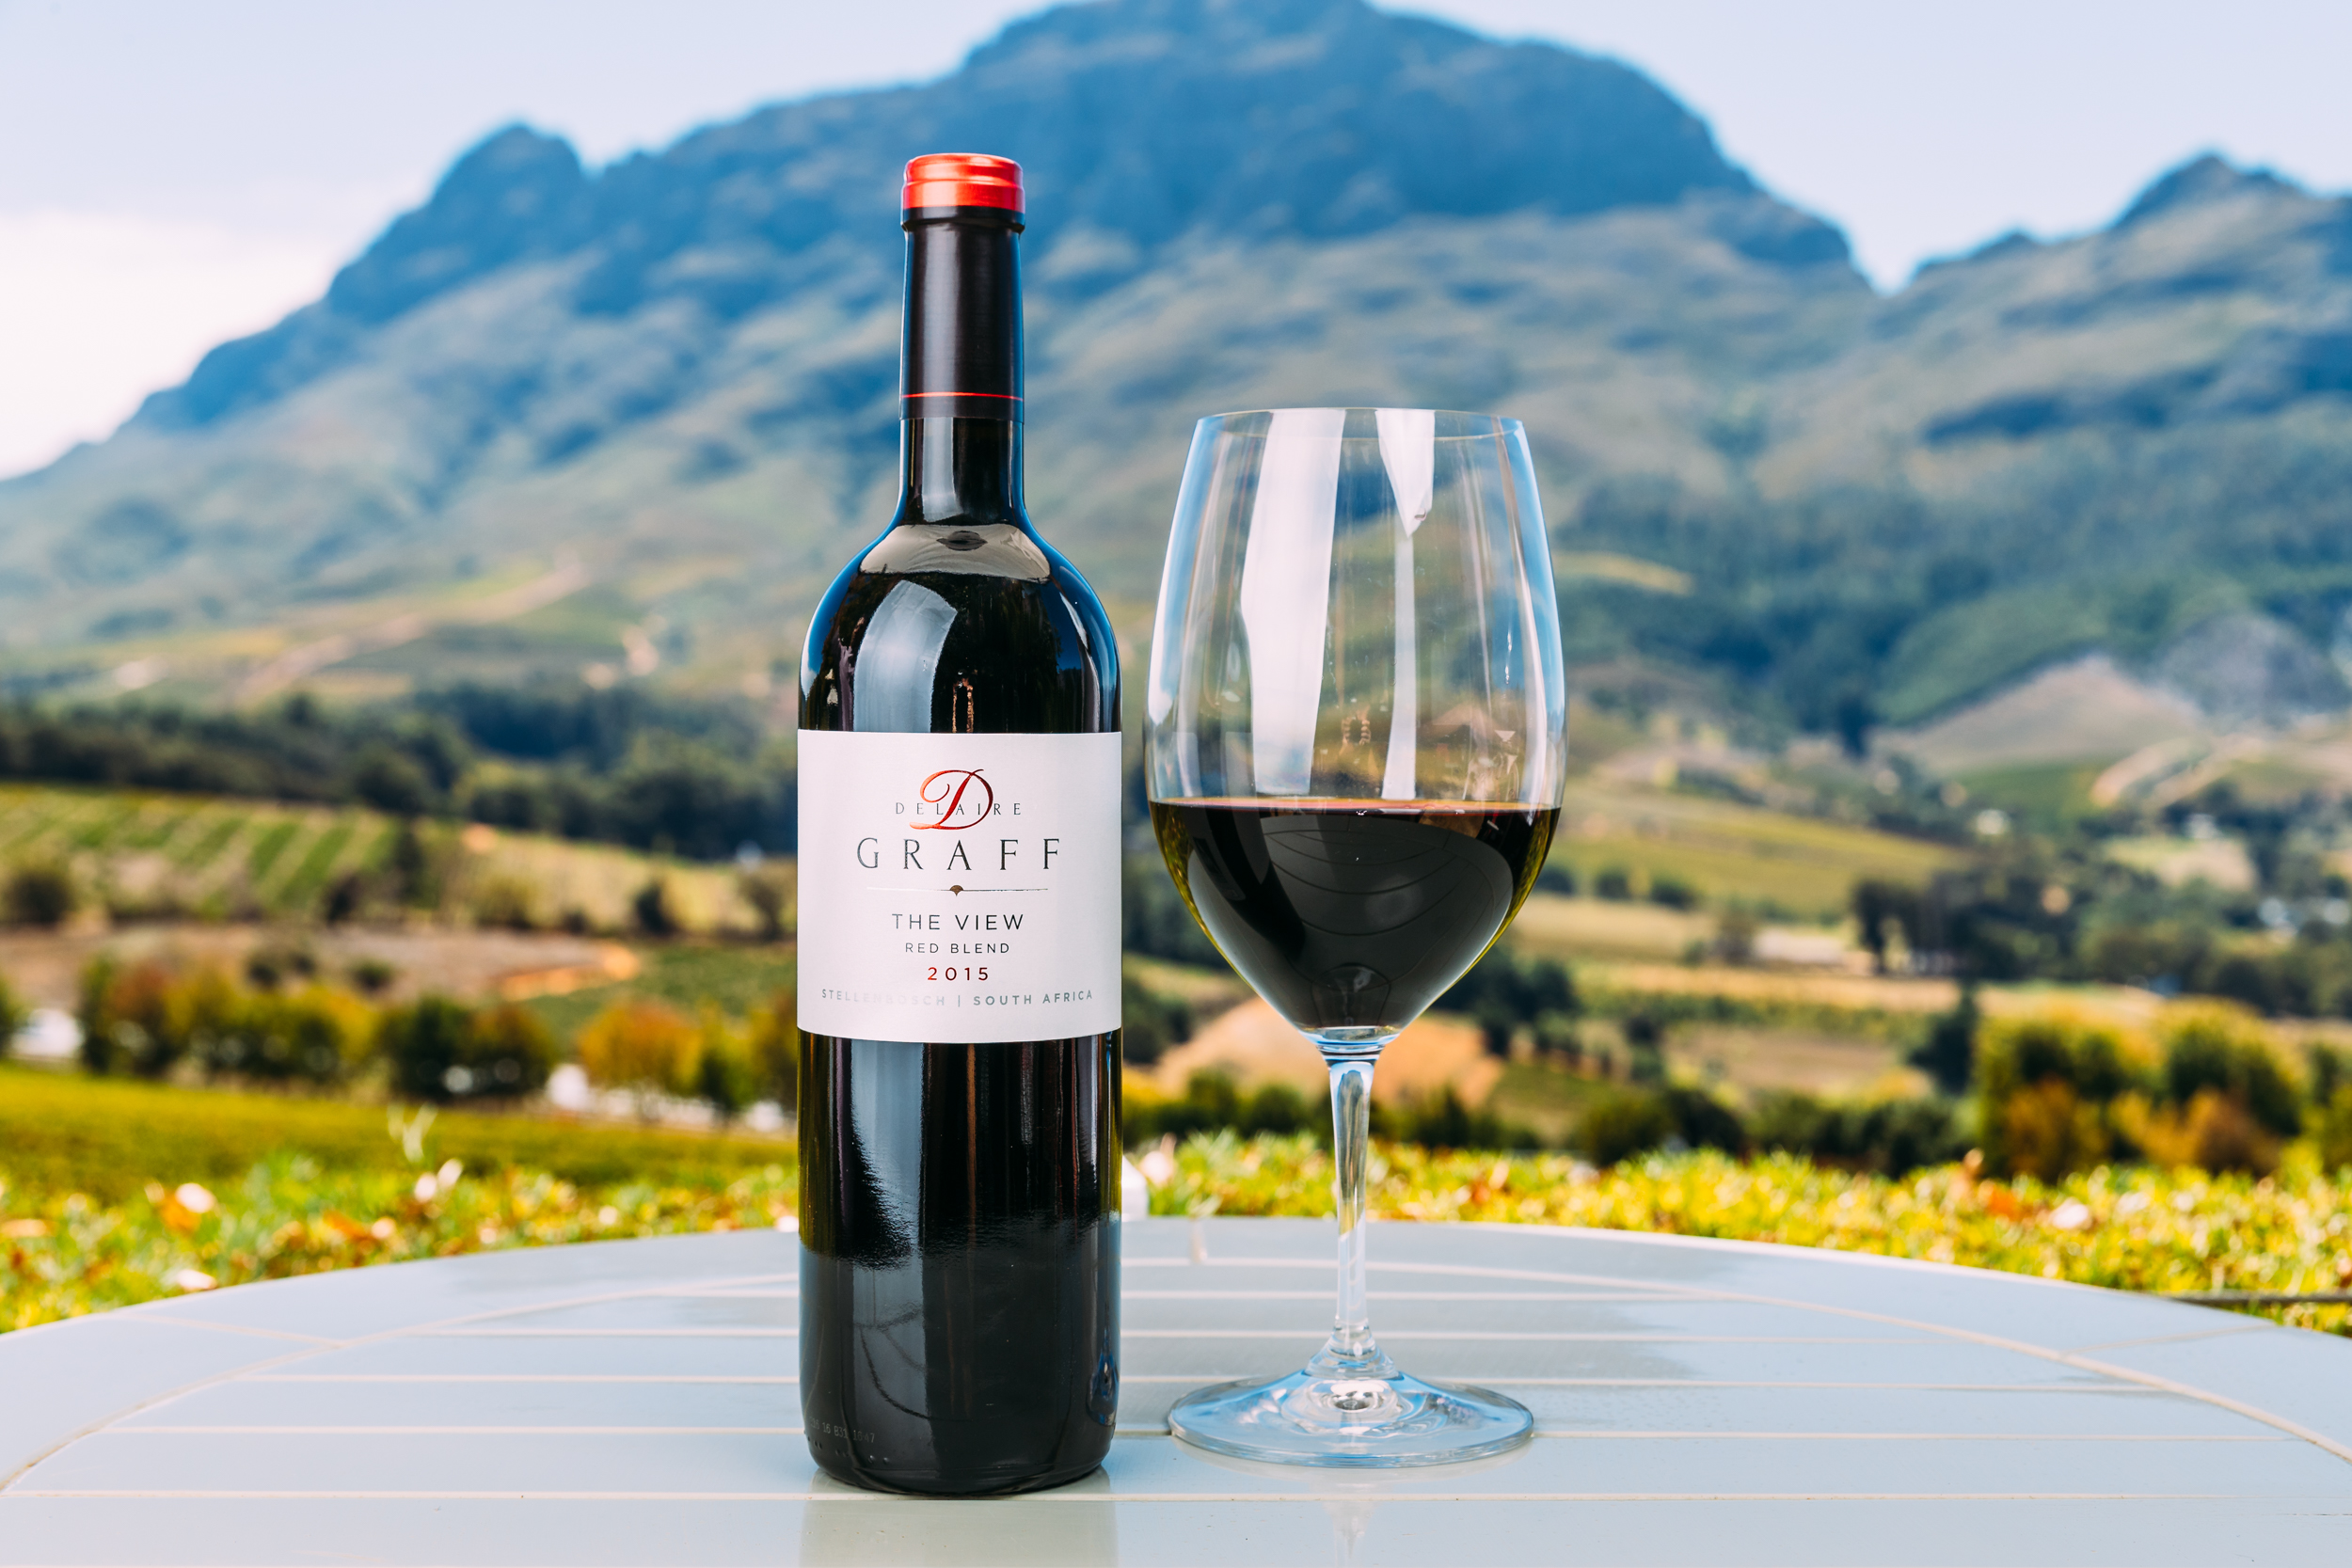 Delaire Graff - DG Red Blend - The View 2015 - 2500px.jpg